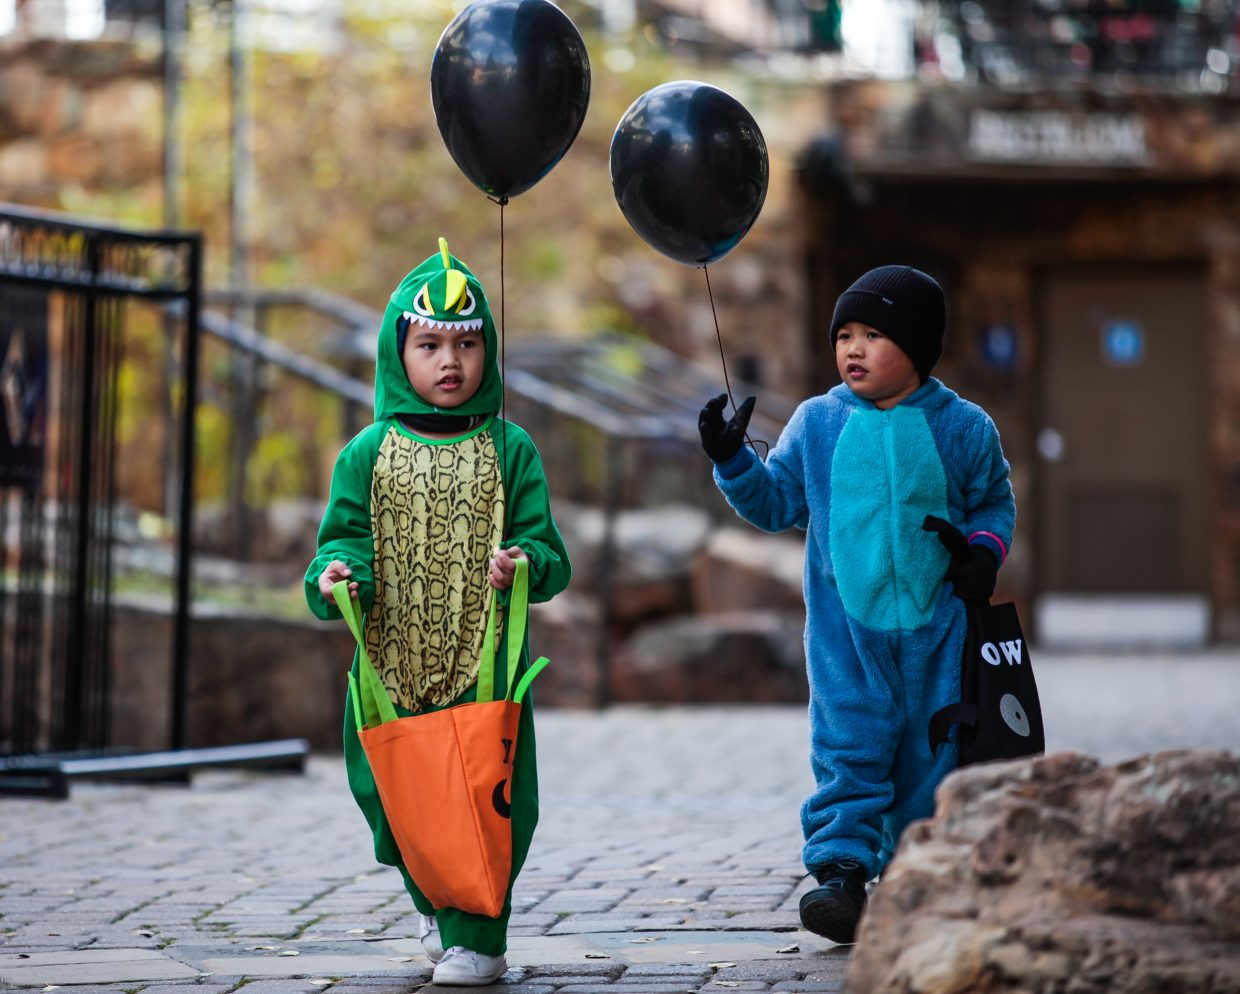 Owen Moreno and Xian Cabrera make their way through Vail Village trick or treating during the annual Trick or Treat Trot through Vail Recreation District Tueday, Oct. 31, in Vail. Leftover candy will be donated to soliders and veterans.